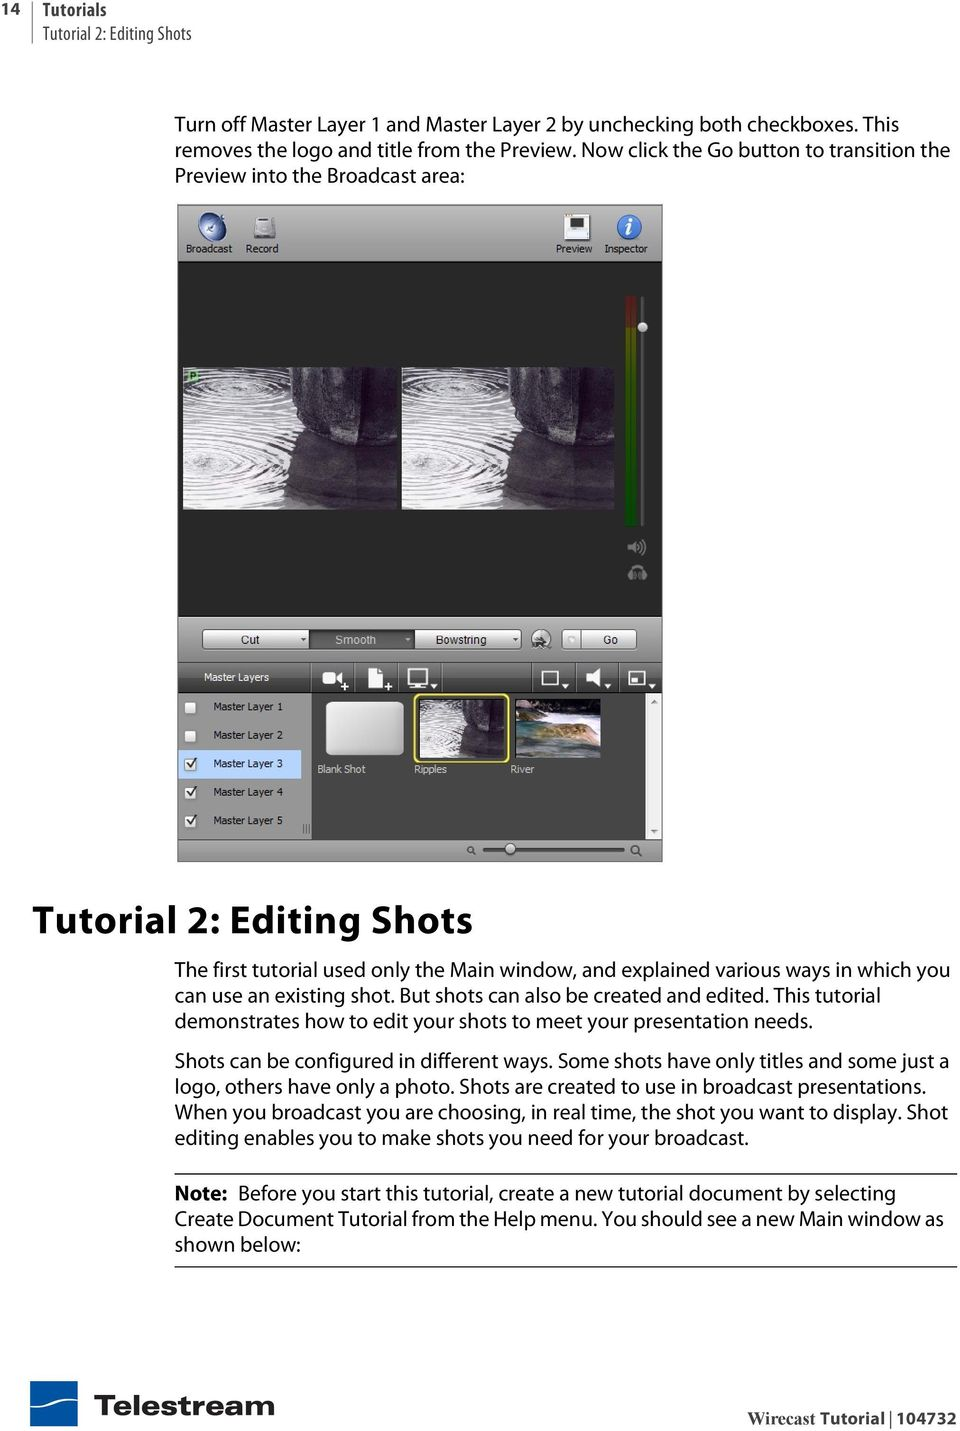 existing shot. But shots can also be created and edited. This tutorial demonstrates how to edit your shots to meet your presentation needs. Shots can be configured in different ways.